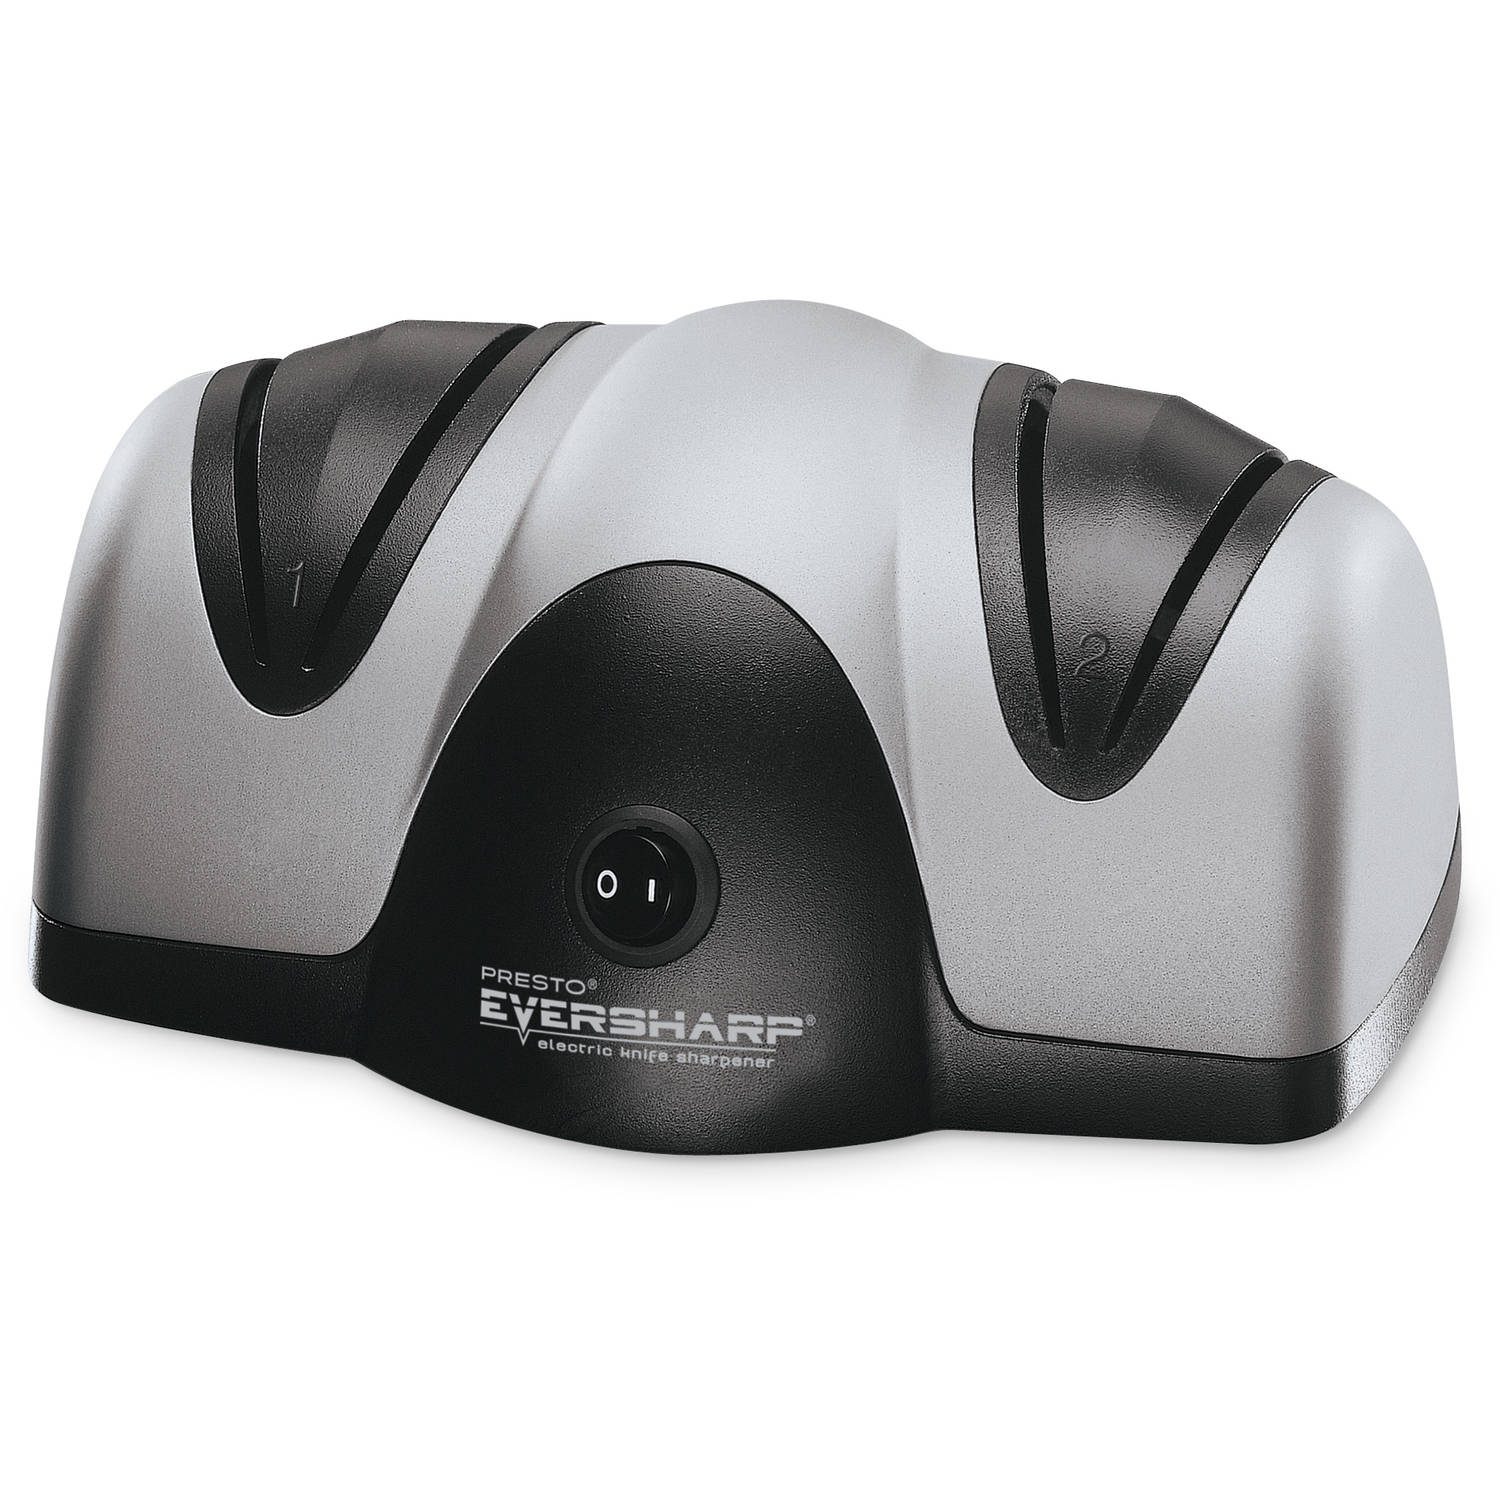 Review of Presto EverSharp® electric knife sharpener 08800